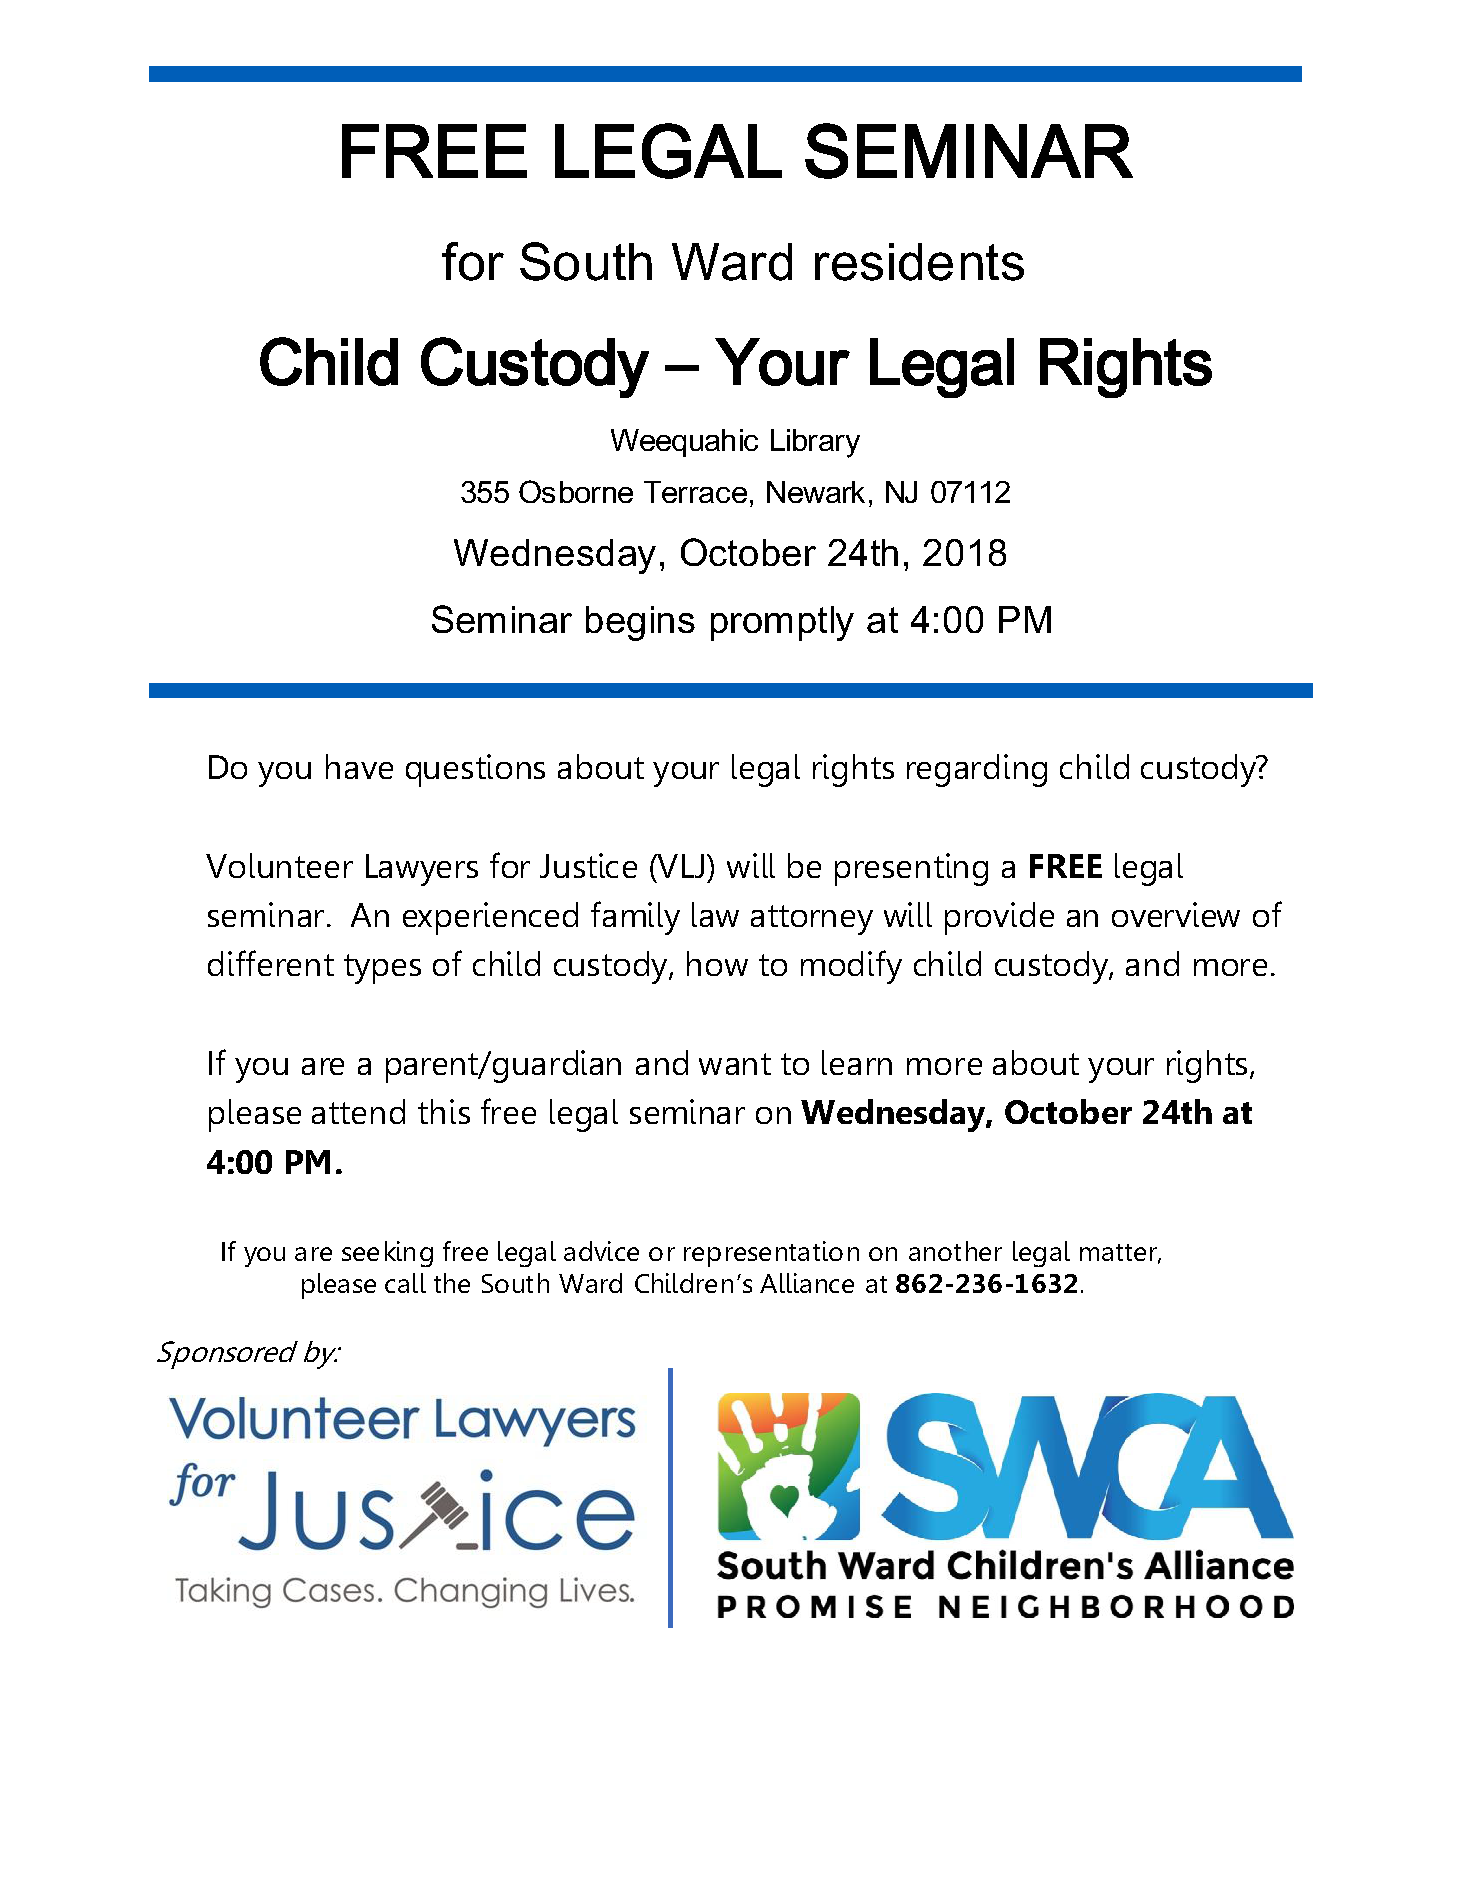 Child Custody Seminar Flyer 10-24-18.png